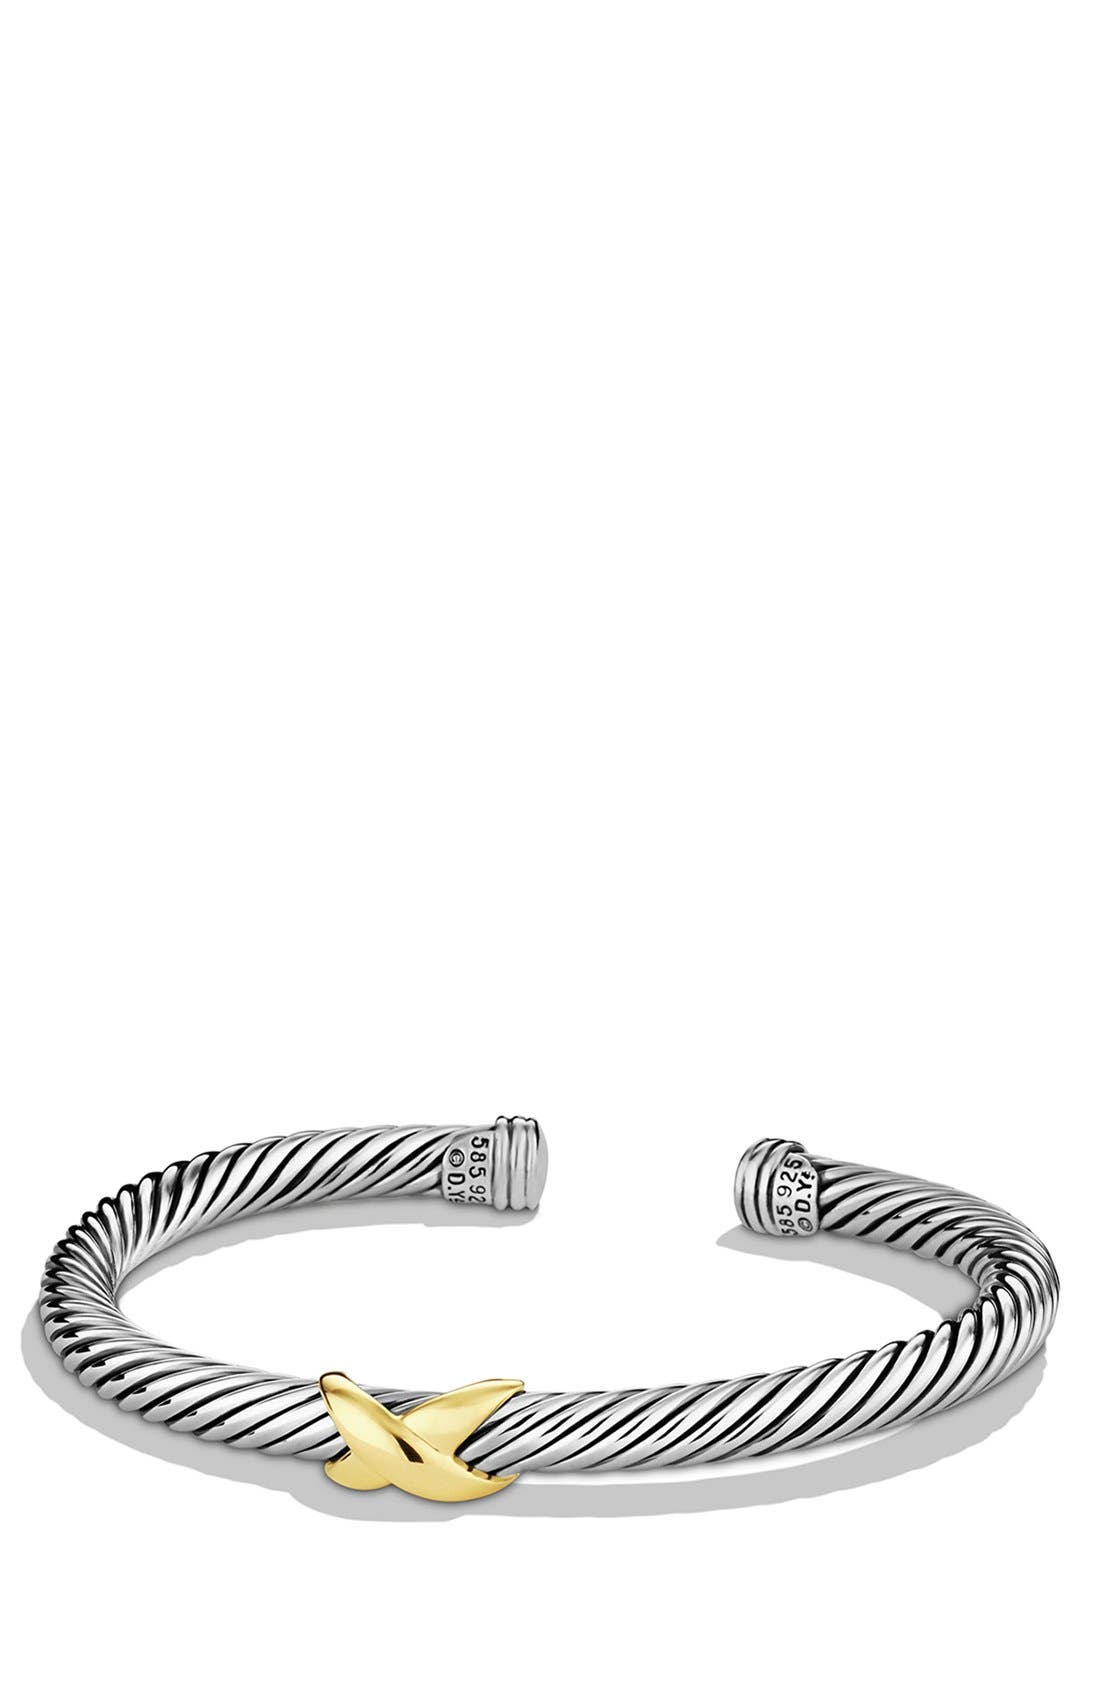 Alternate Image 1 Selected - David Yurman 'X' Bracelet with Gold